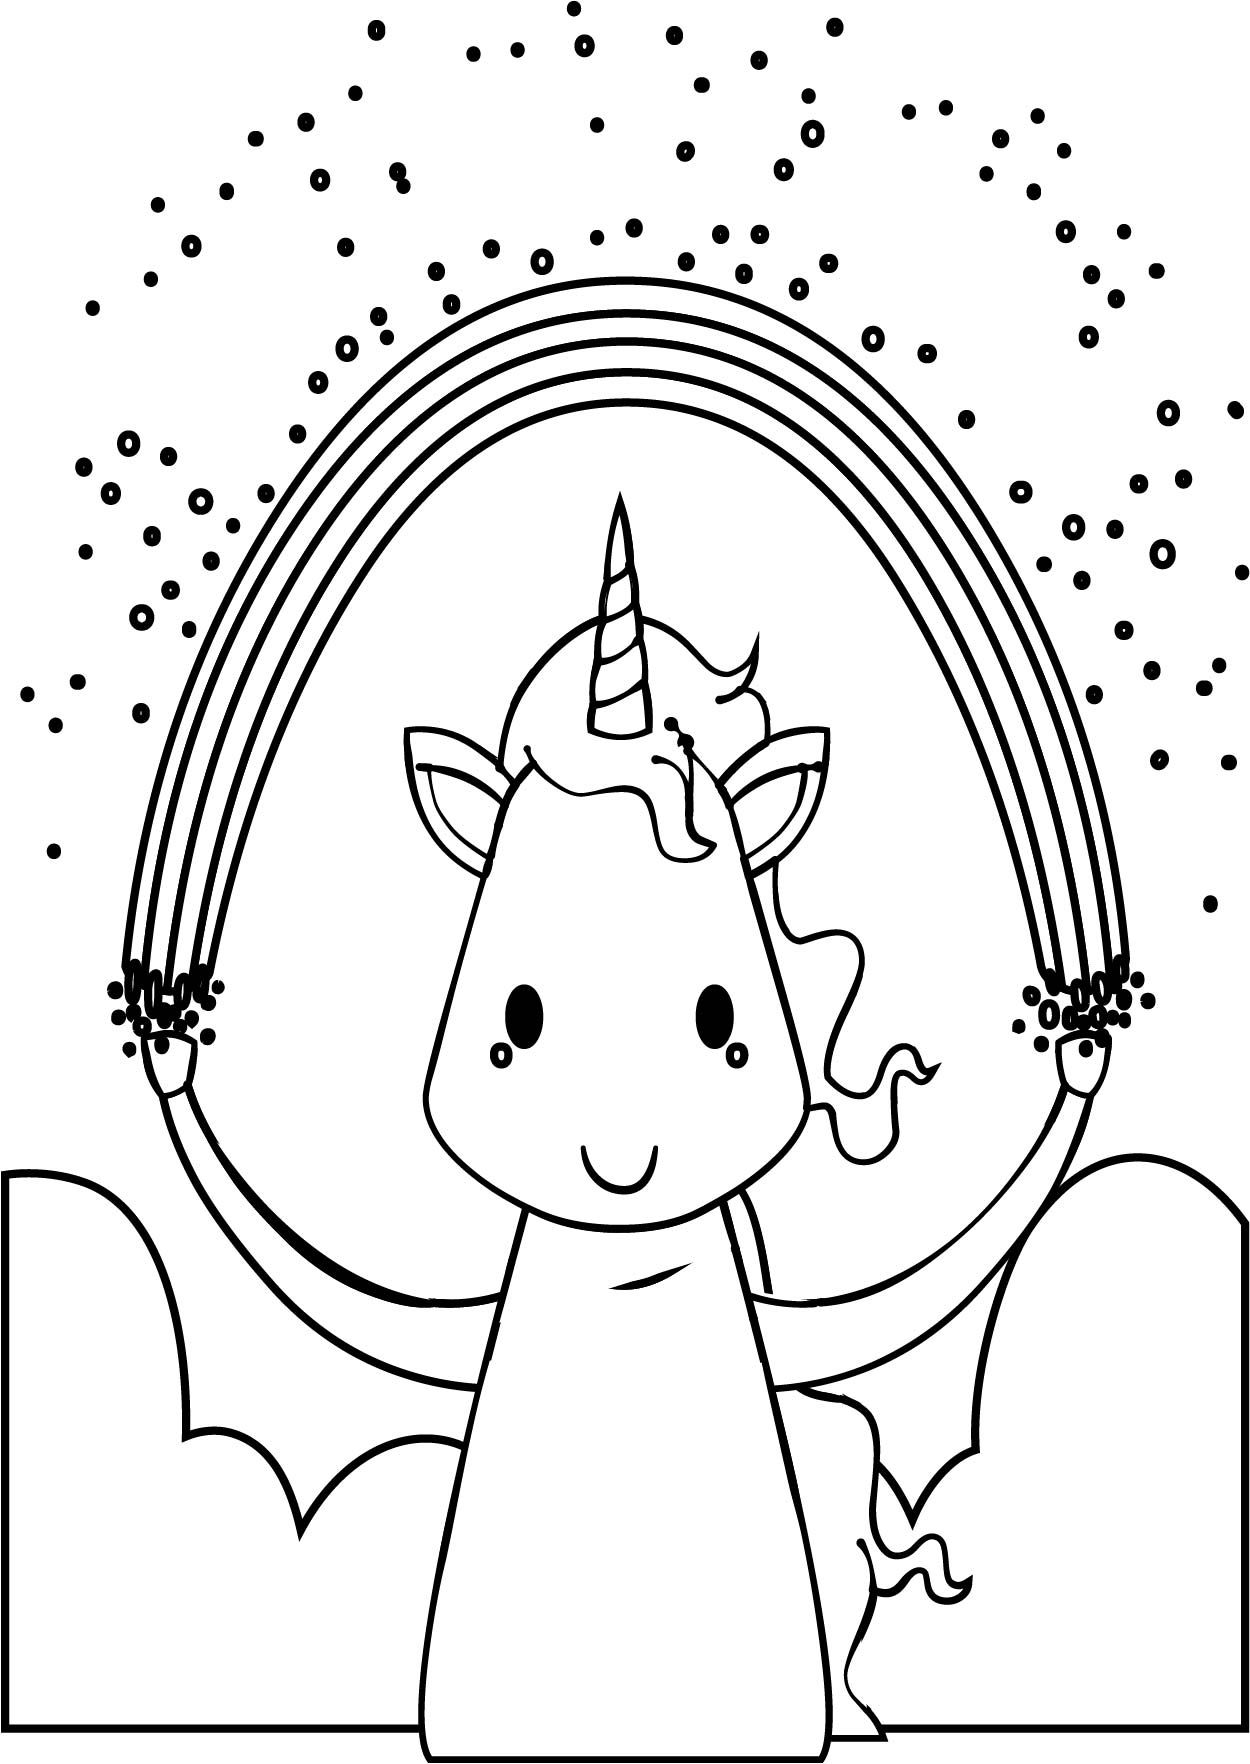 Awesome Happy Unicorn With Rainbow Coloring Page Happy Unicorn Coloring Pages Printable Coloring Pages